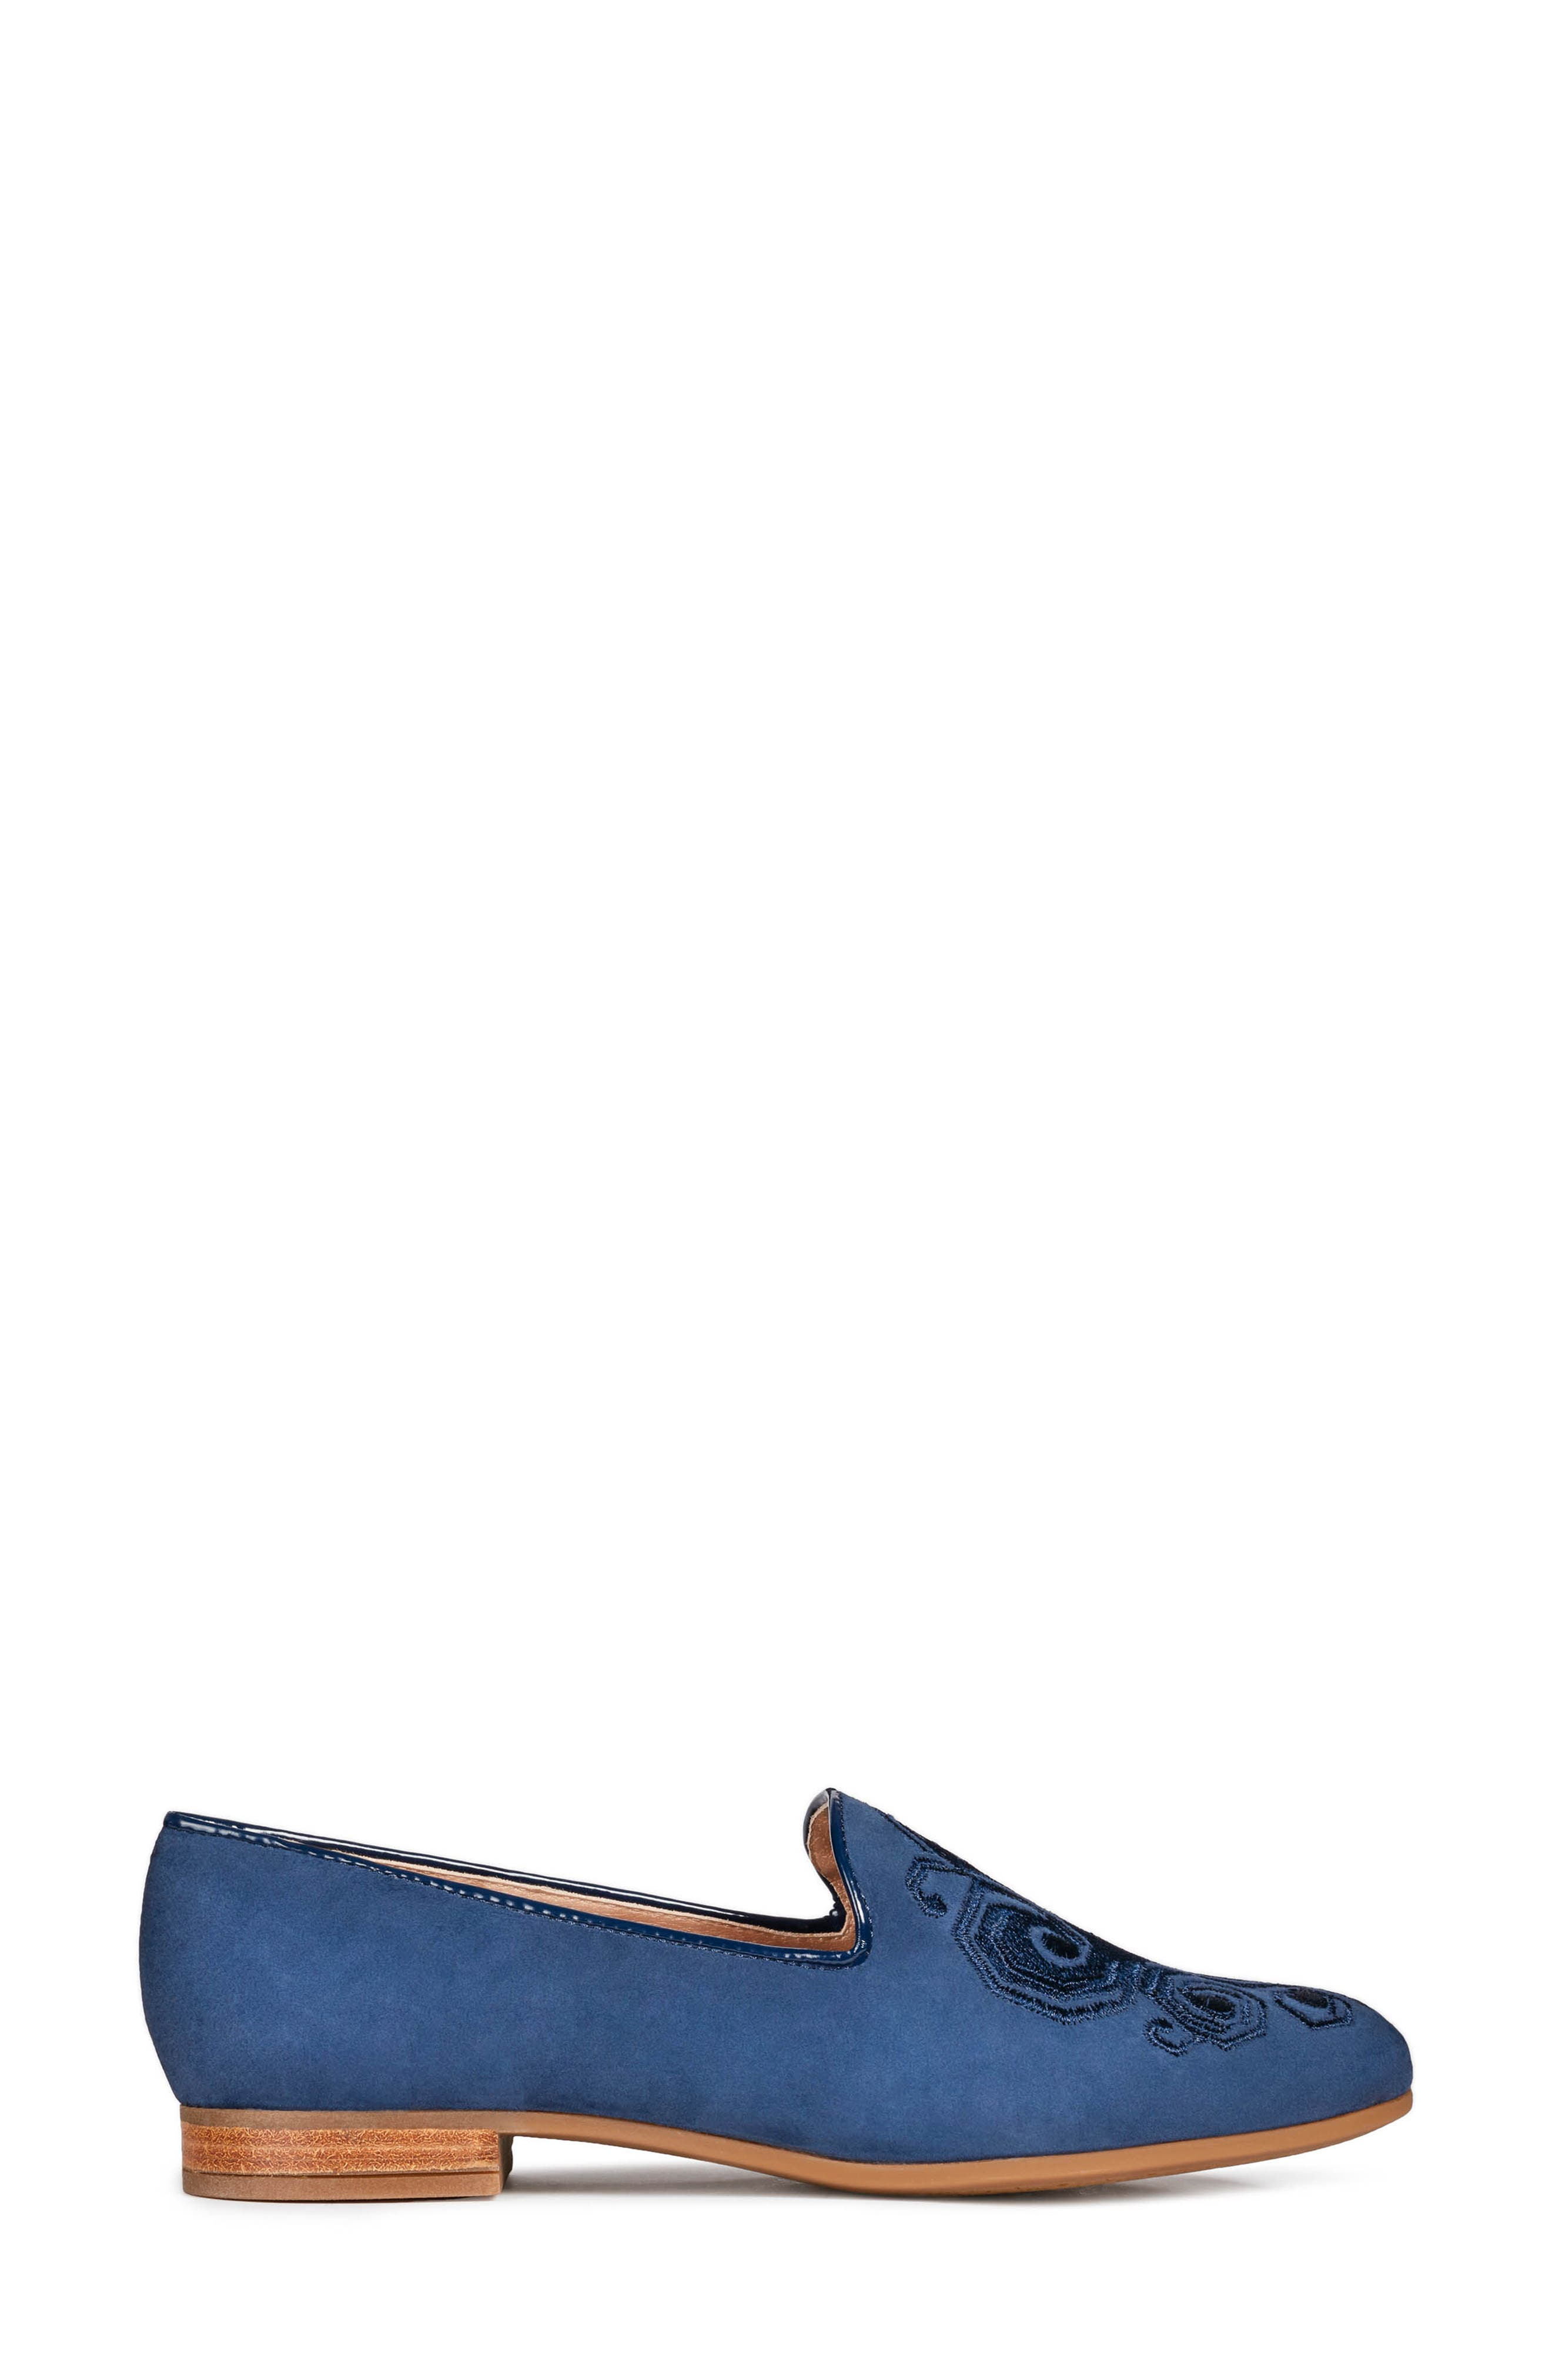 GEOX, Marlyna Loafer, Alternate thumbnail 3, color, BLUE SUEDE